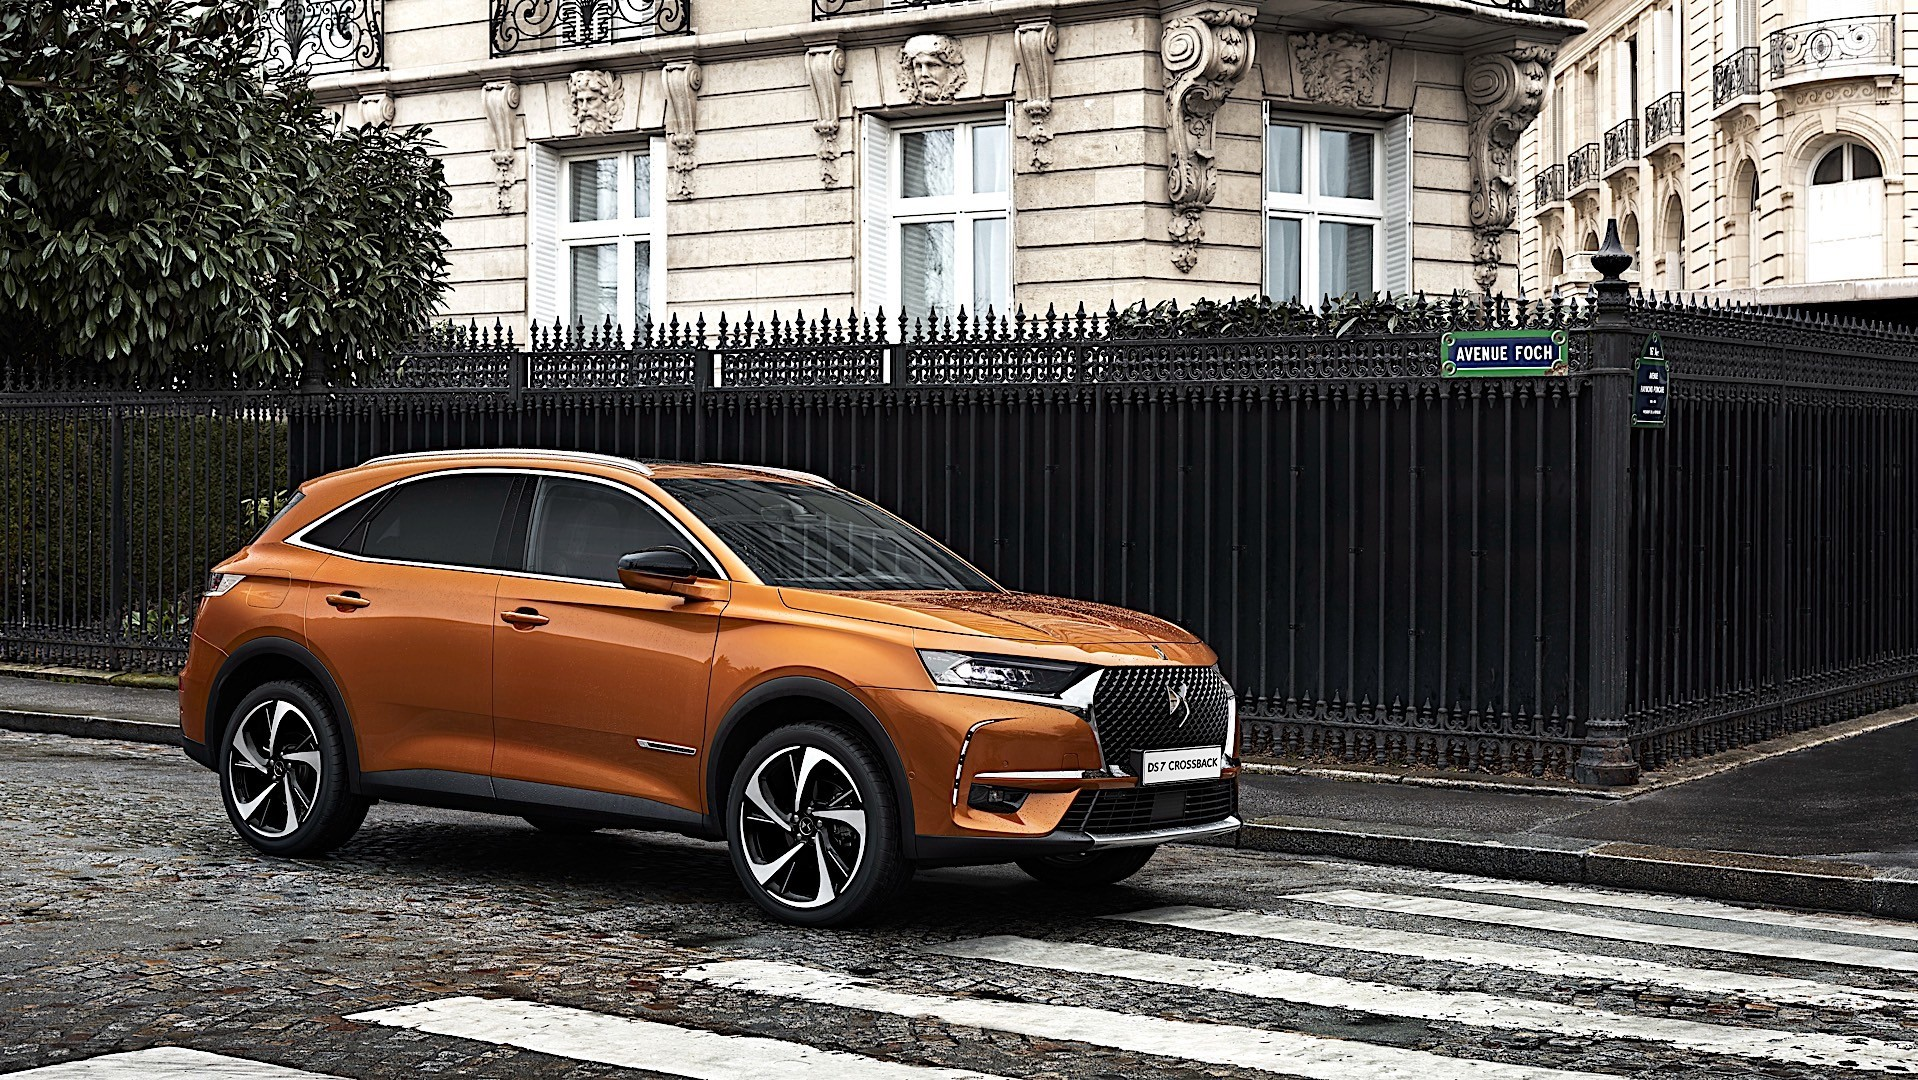 ds automobiles ds7 crossback specs photos 2017 2018 2019 autoevolution. Black Bedroom Furniture Sets. Home Design Ideas